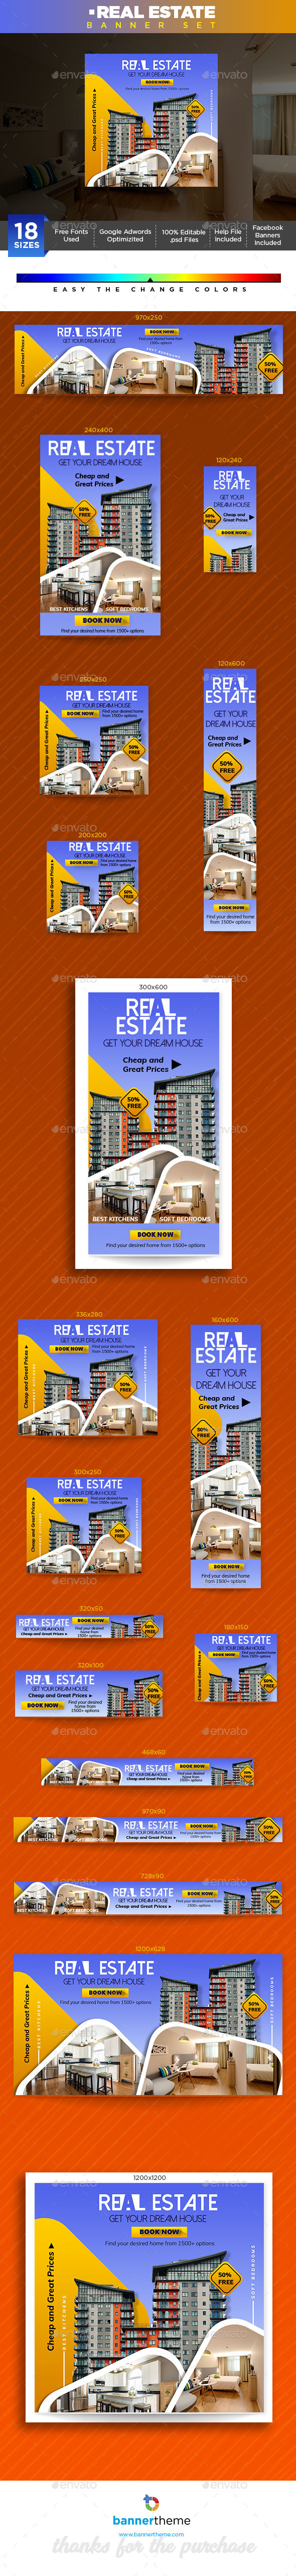 Real Estate Banner - Banners & Ads Web Elements